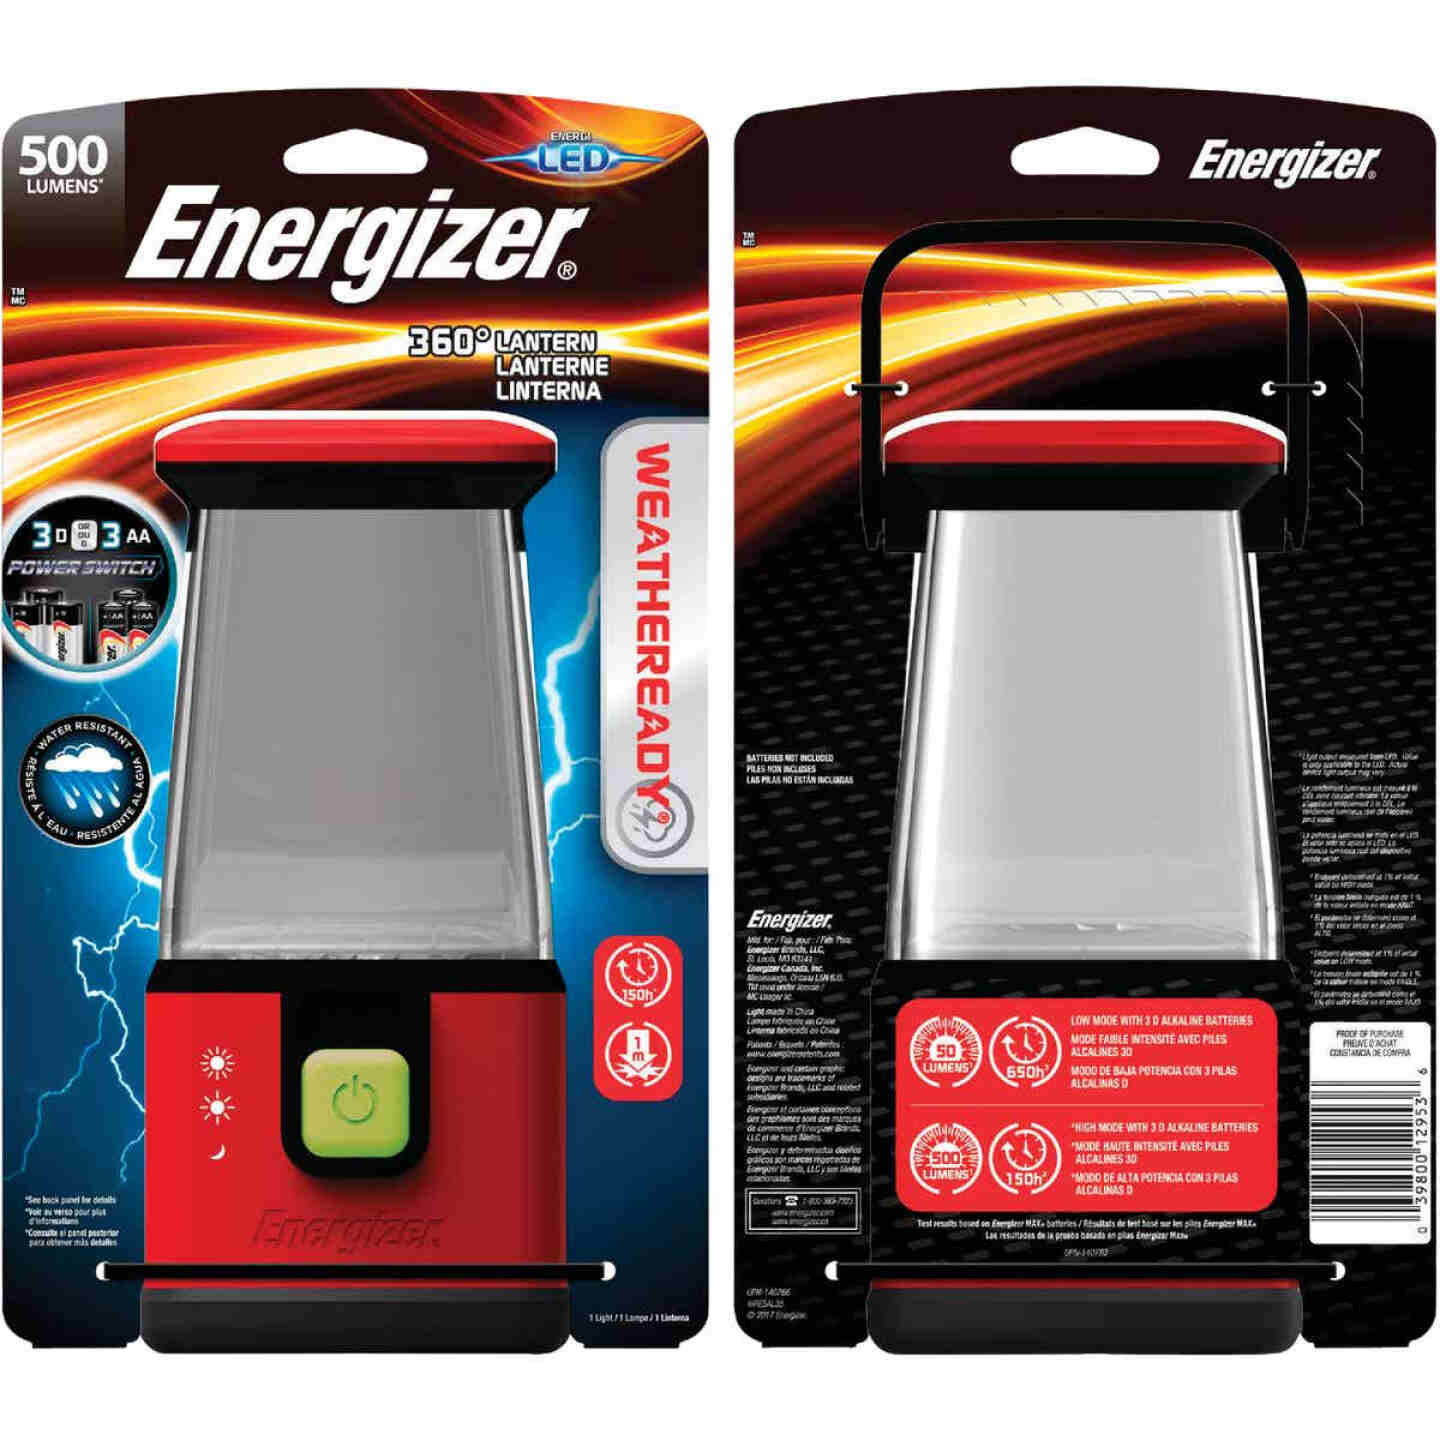 Energizer Weatheready 6 in. W. x 10 In. H. Red Plastic LED Lantern Image 1